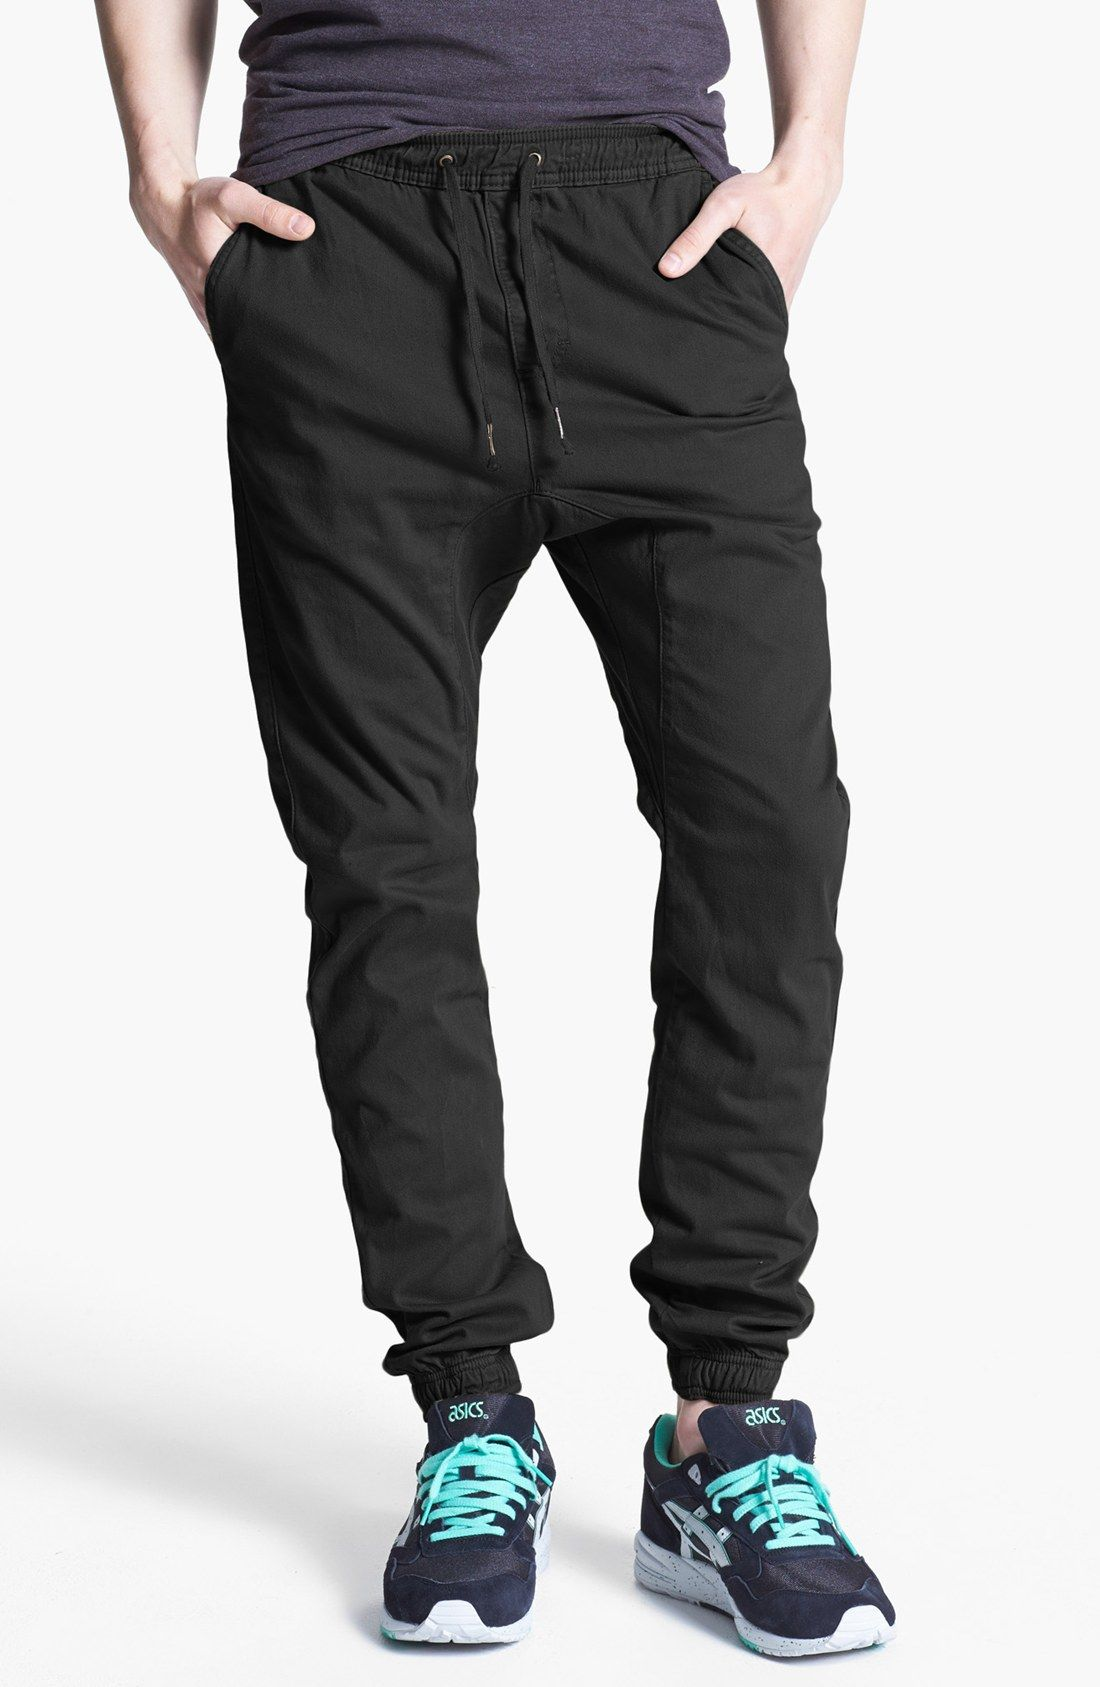 The perfect pants for Thanksgiving leftovers | Mens jogger ...